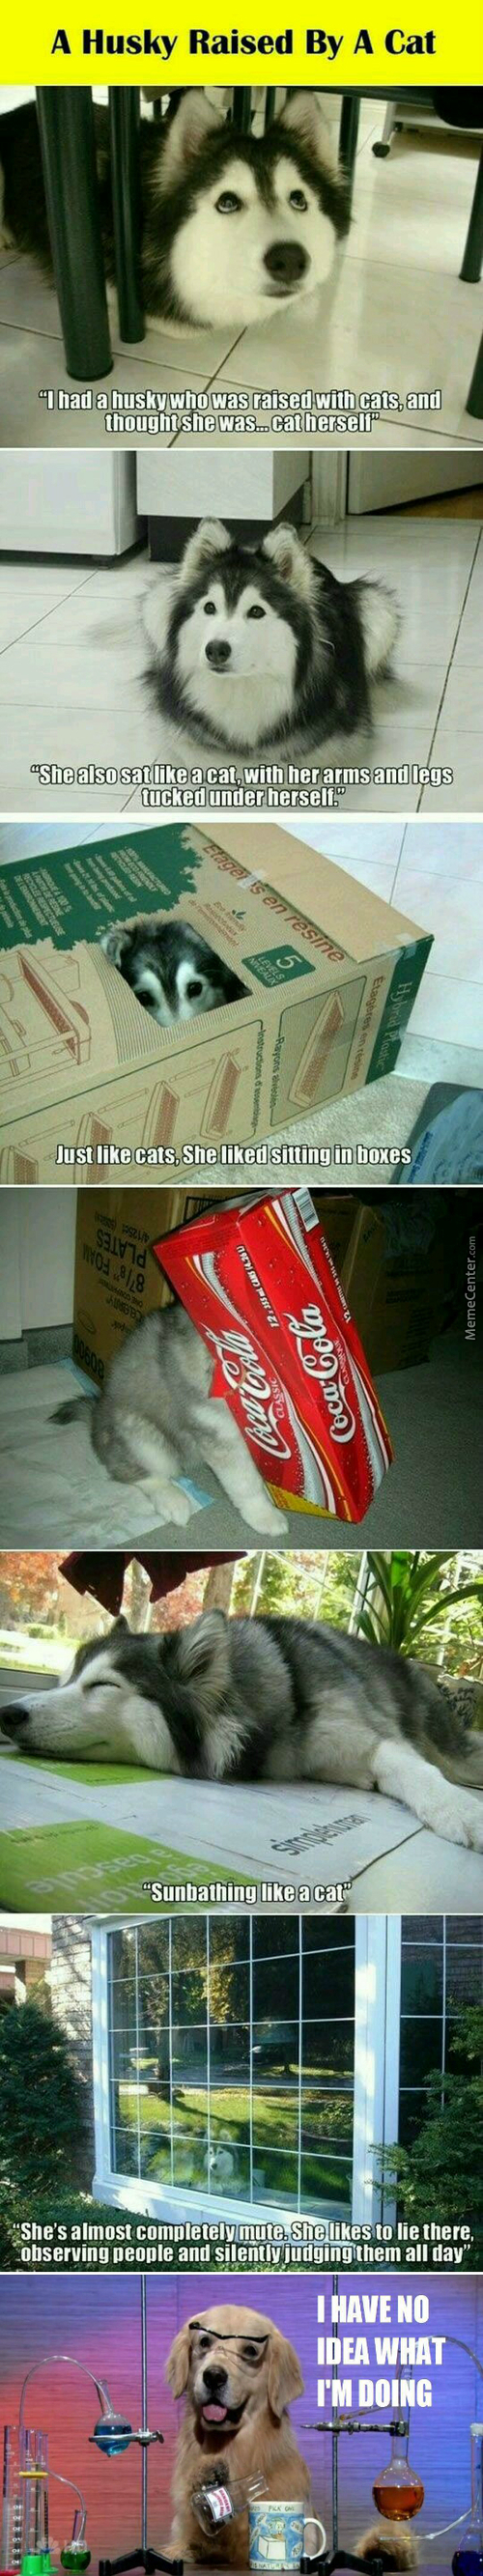 buying a cat